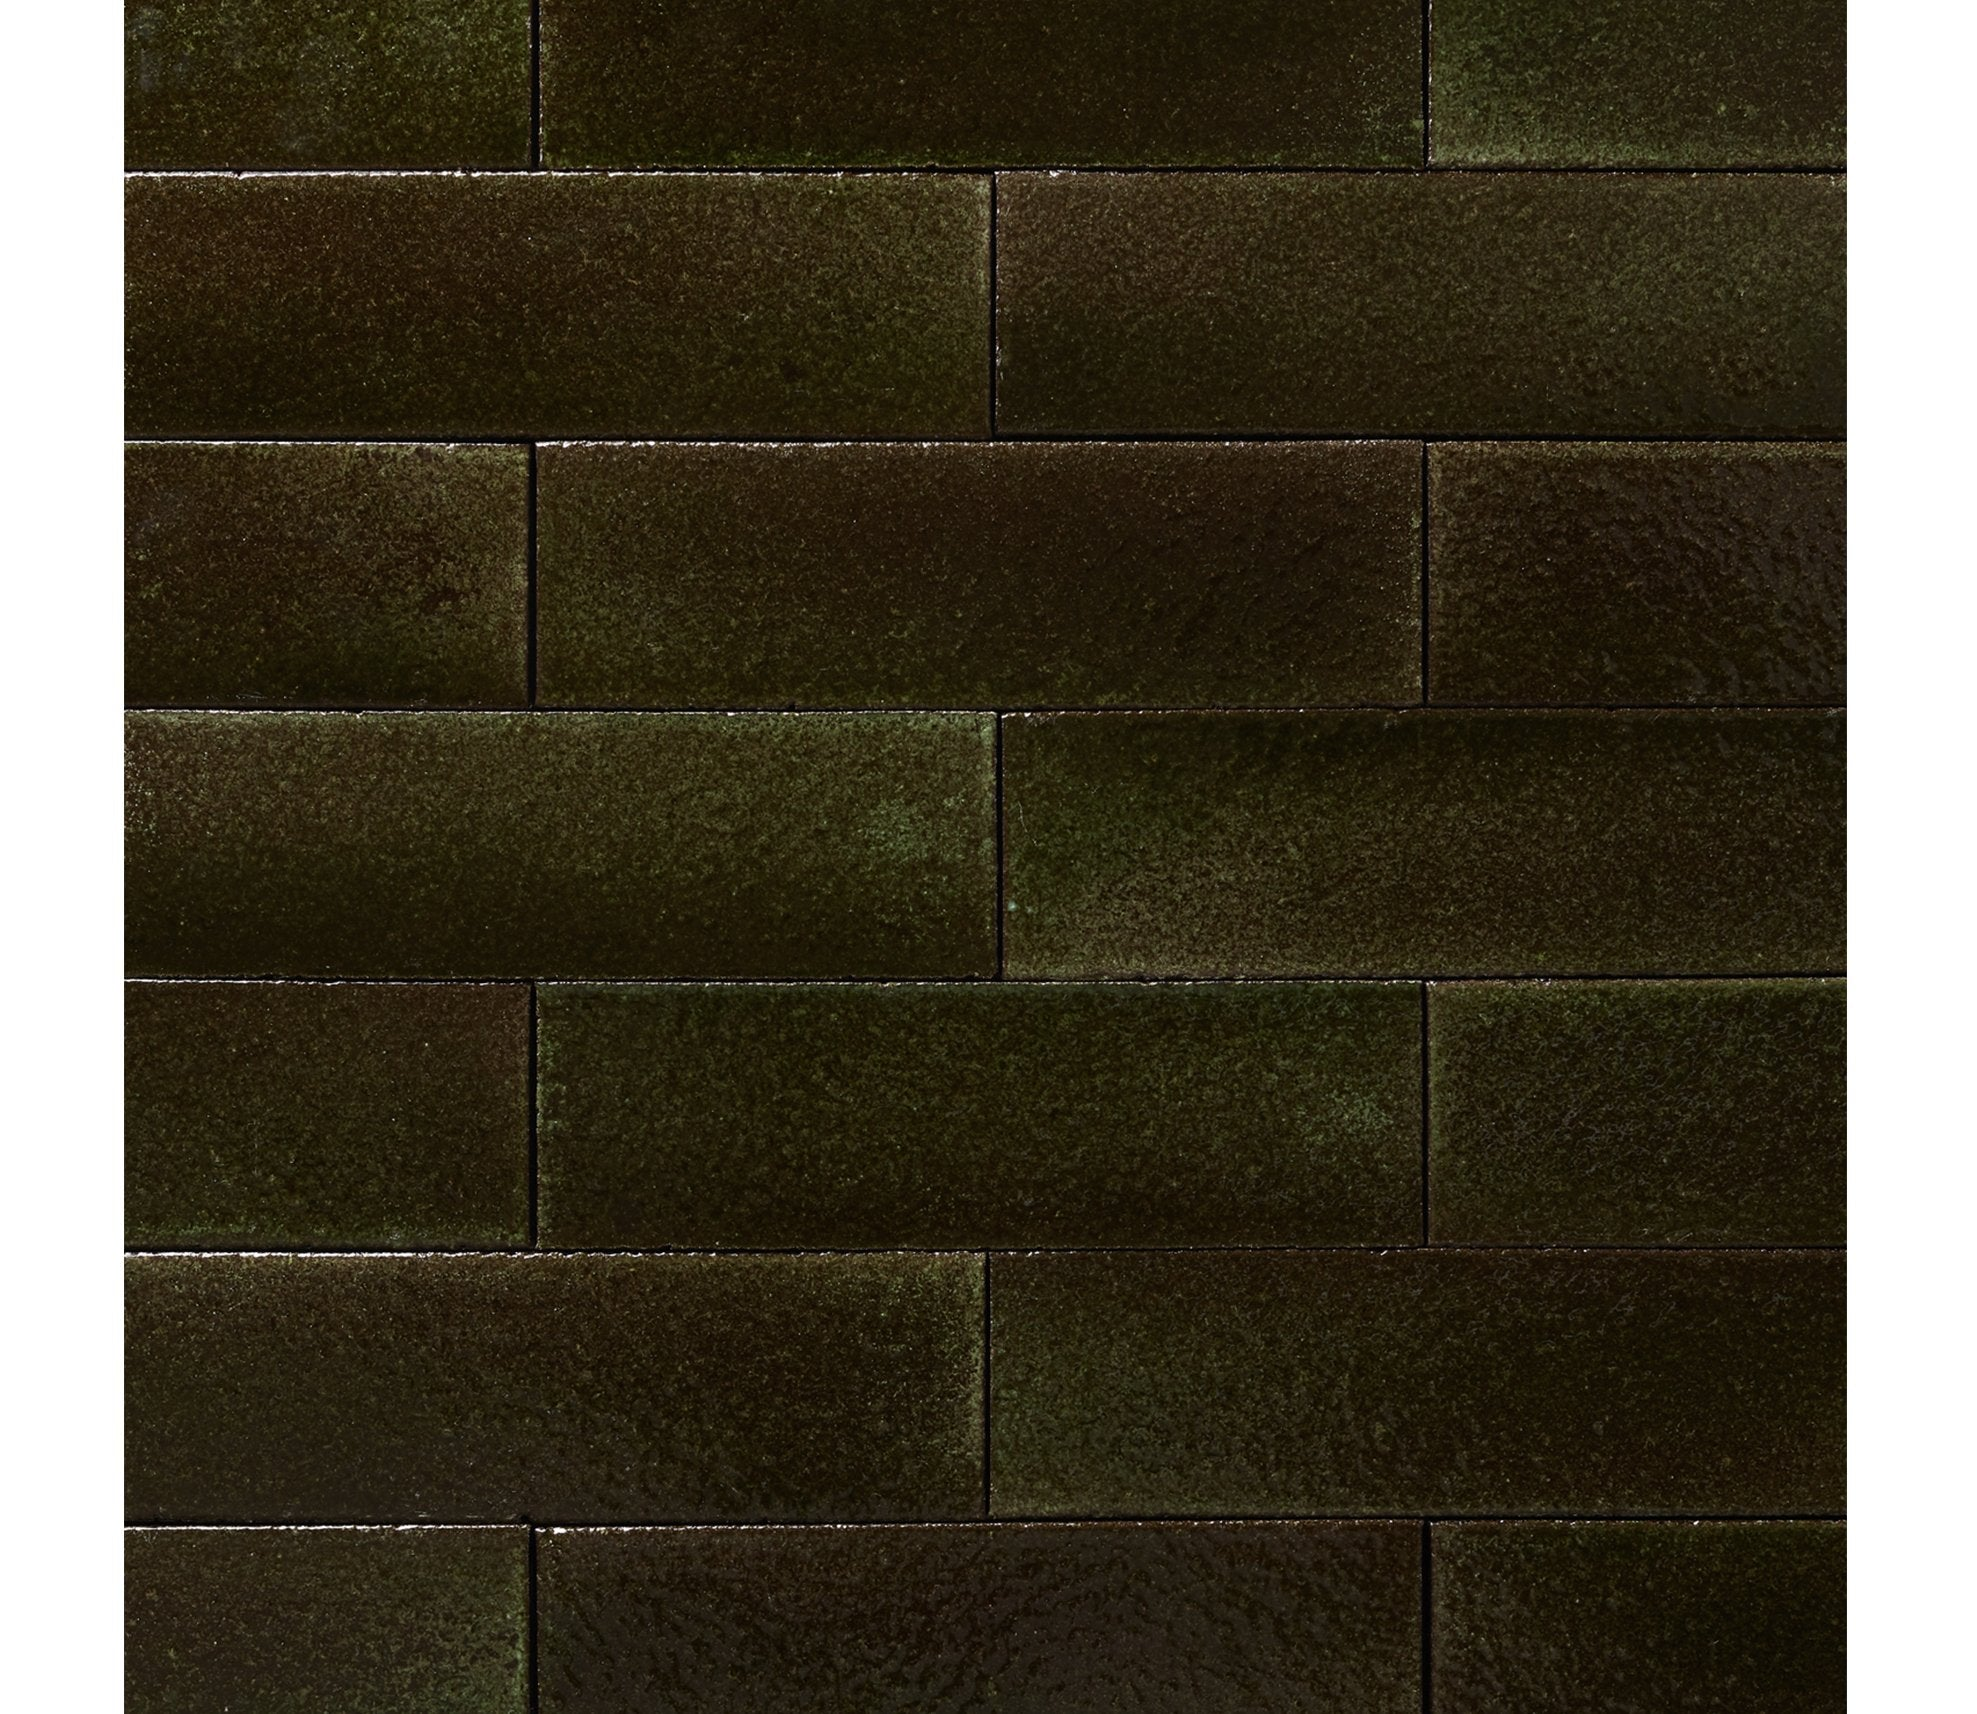 Terra Firma Glazed Bricks Product Image 46